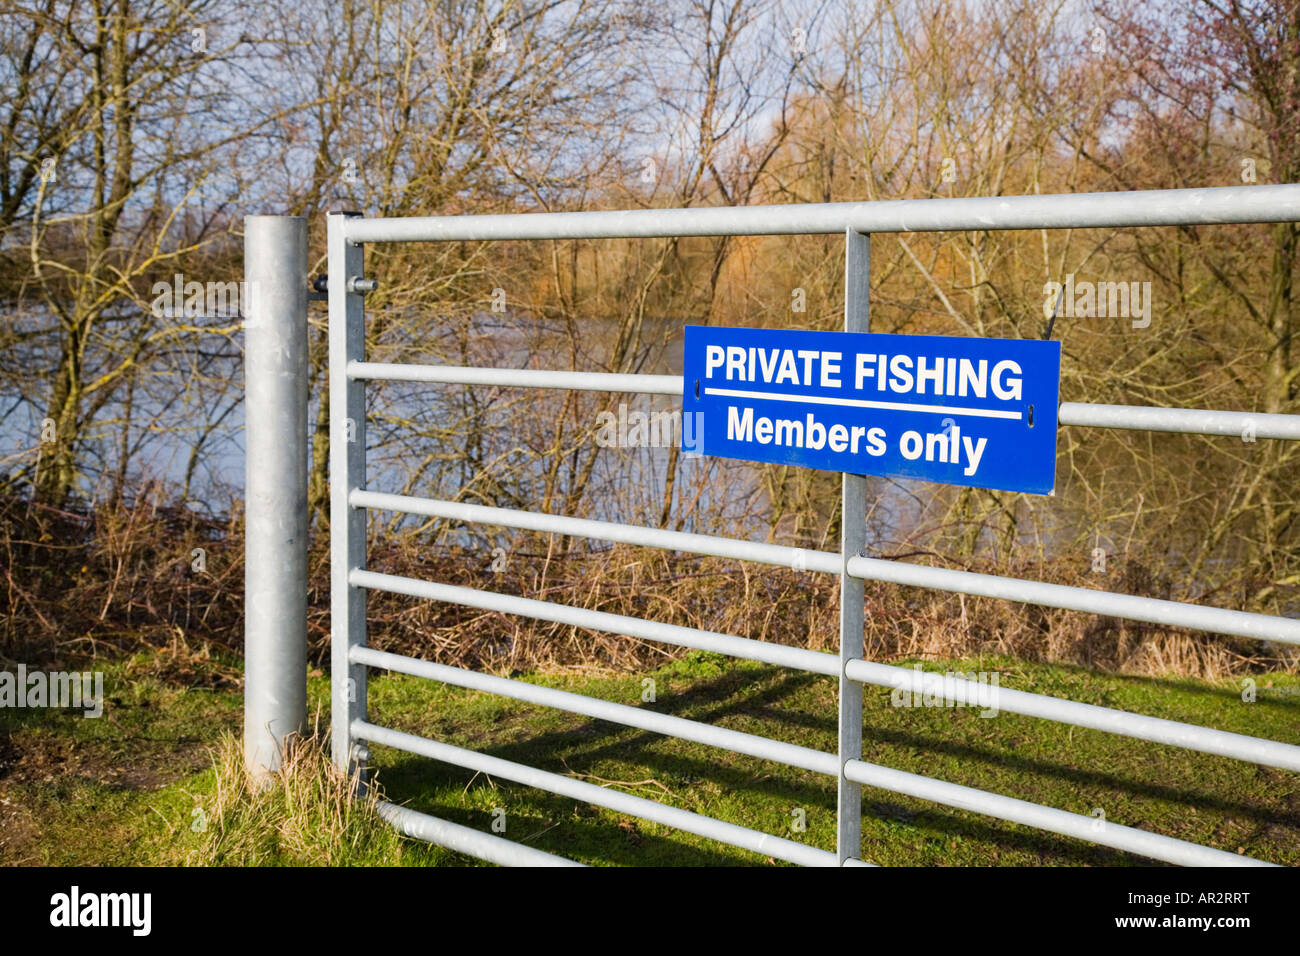 Gate to a private fishing area. Members only. Hampshire. UK. - Stock Image